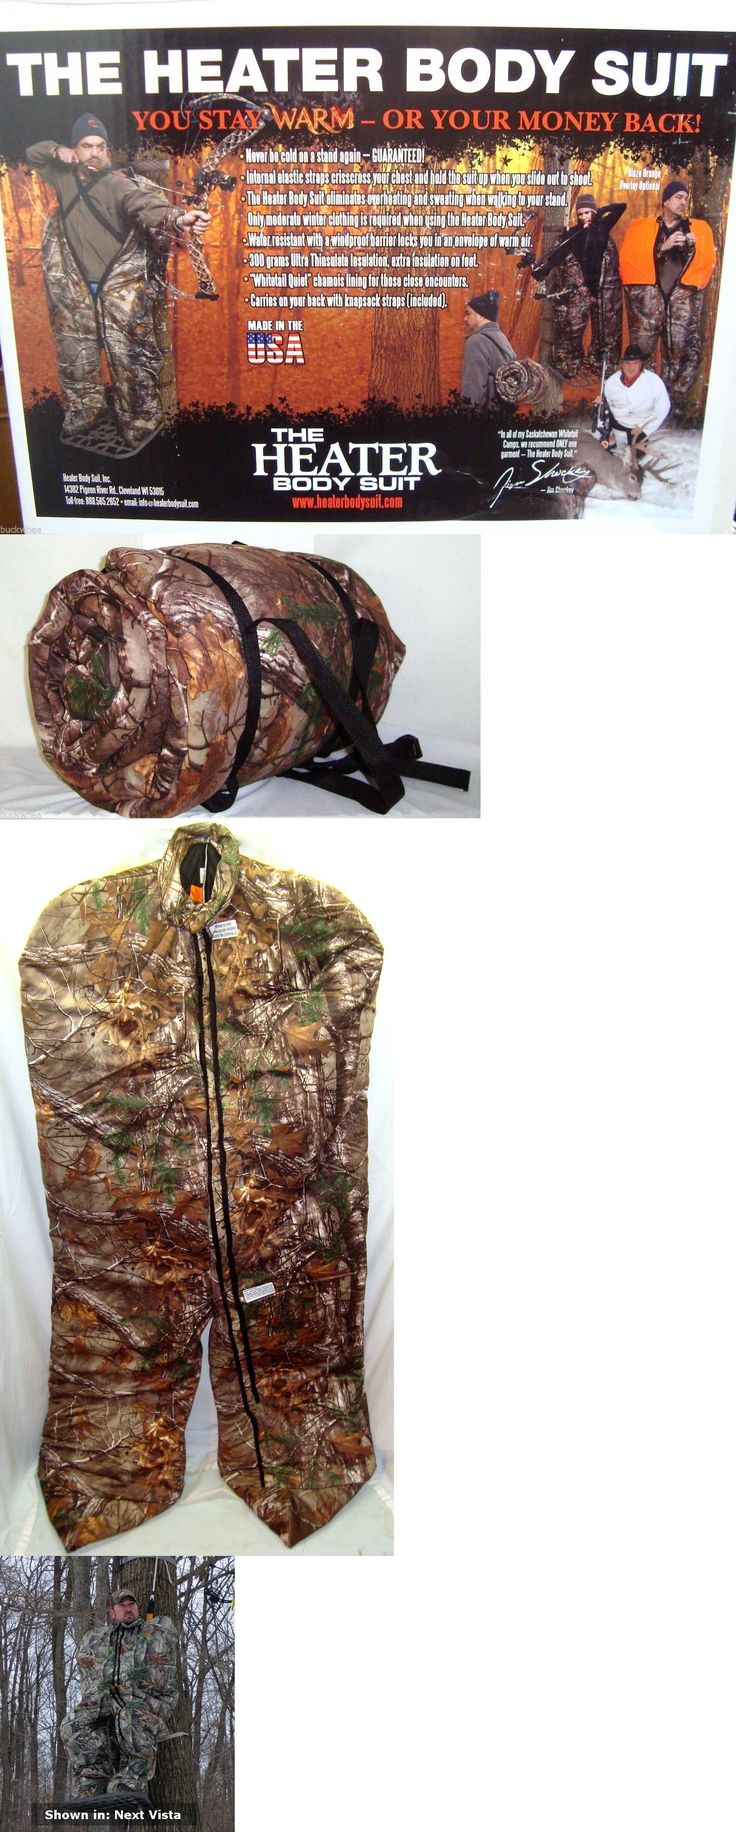 Other Hunting Clothing and Accs 159036: The Heater Body Suit - Large Wide- Mossy Oak Infinity Camo -> BUY IT NOW ONLY: $359.95 on eBay!